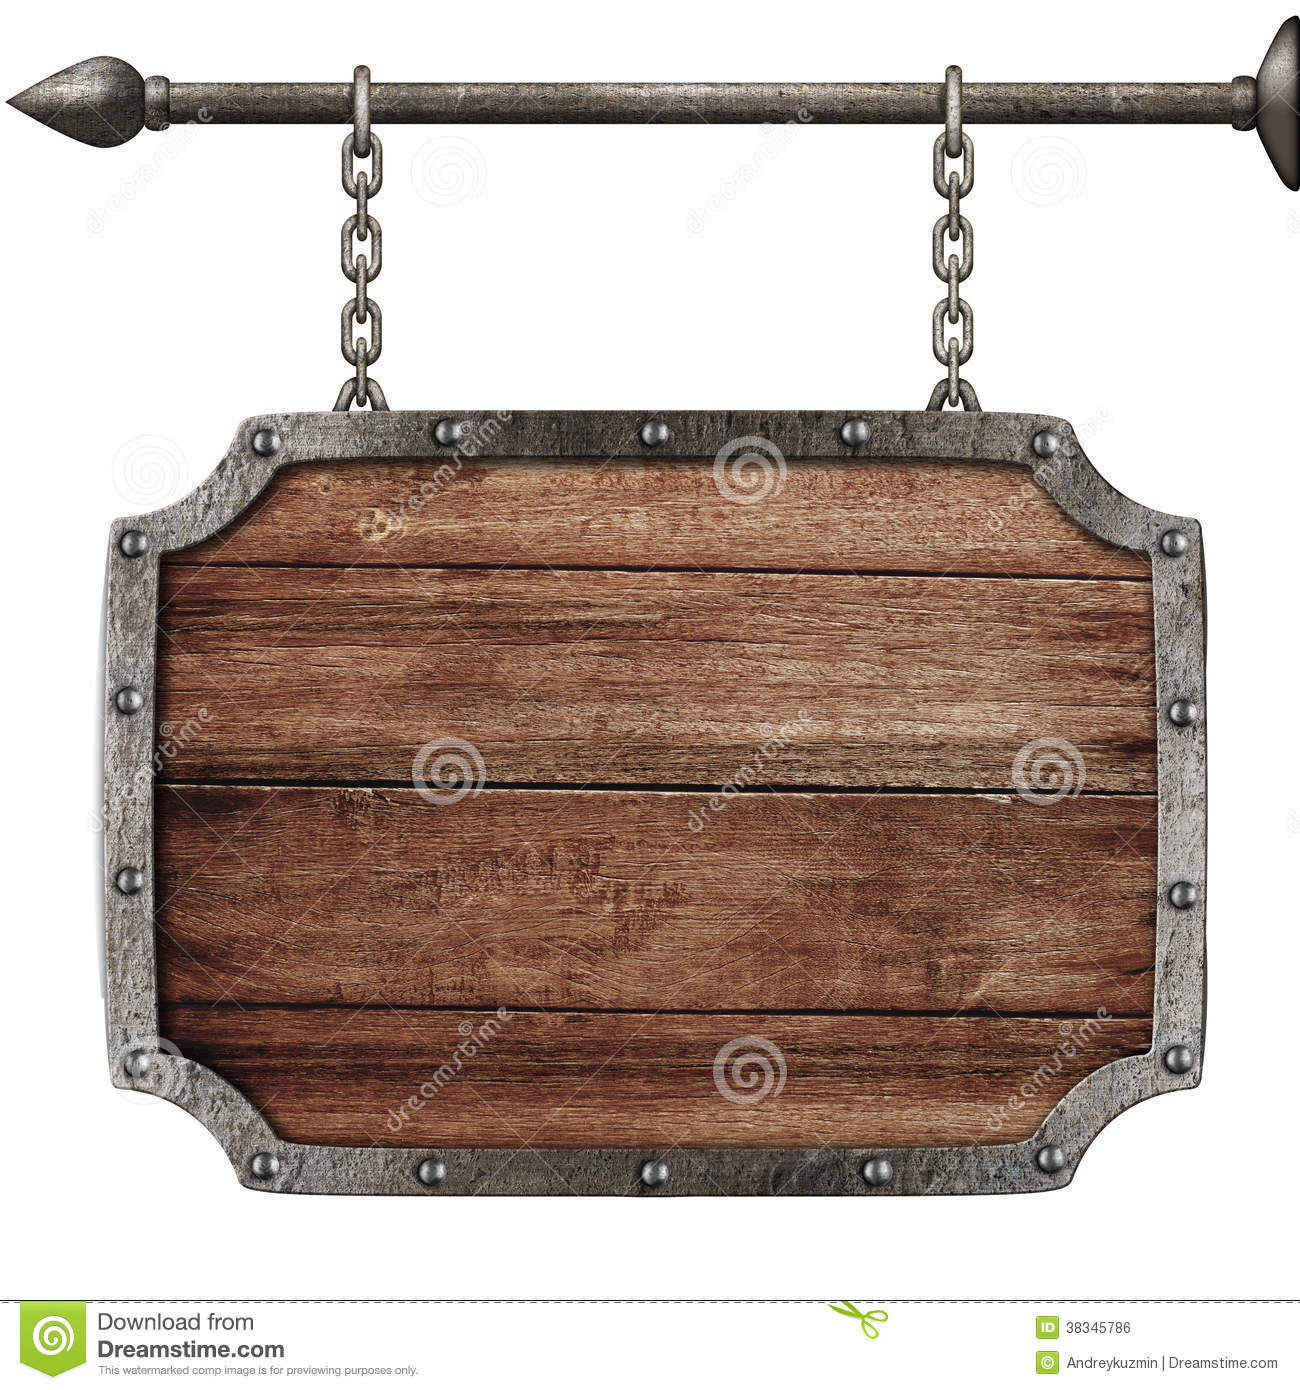 medieval wood sign hanging on chains isolated stock photo. Black Bedroom Furniture Sets. Home Design Ideas